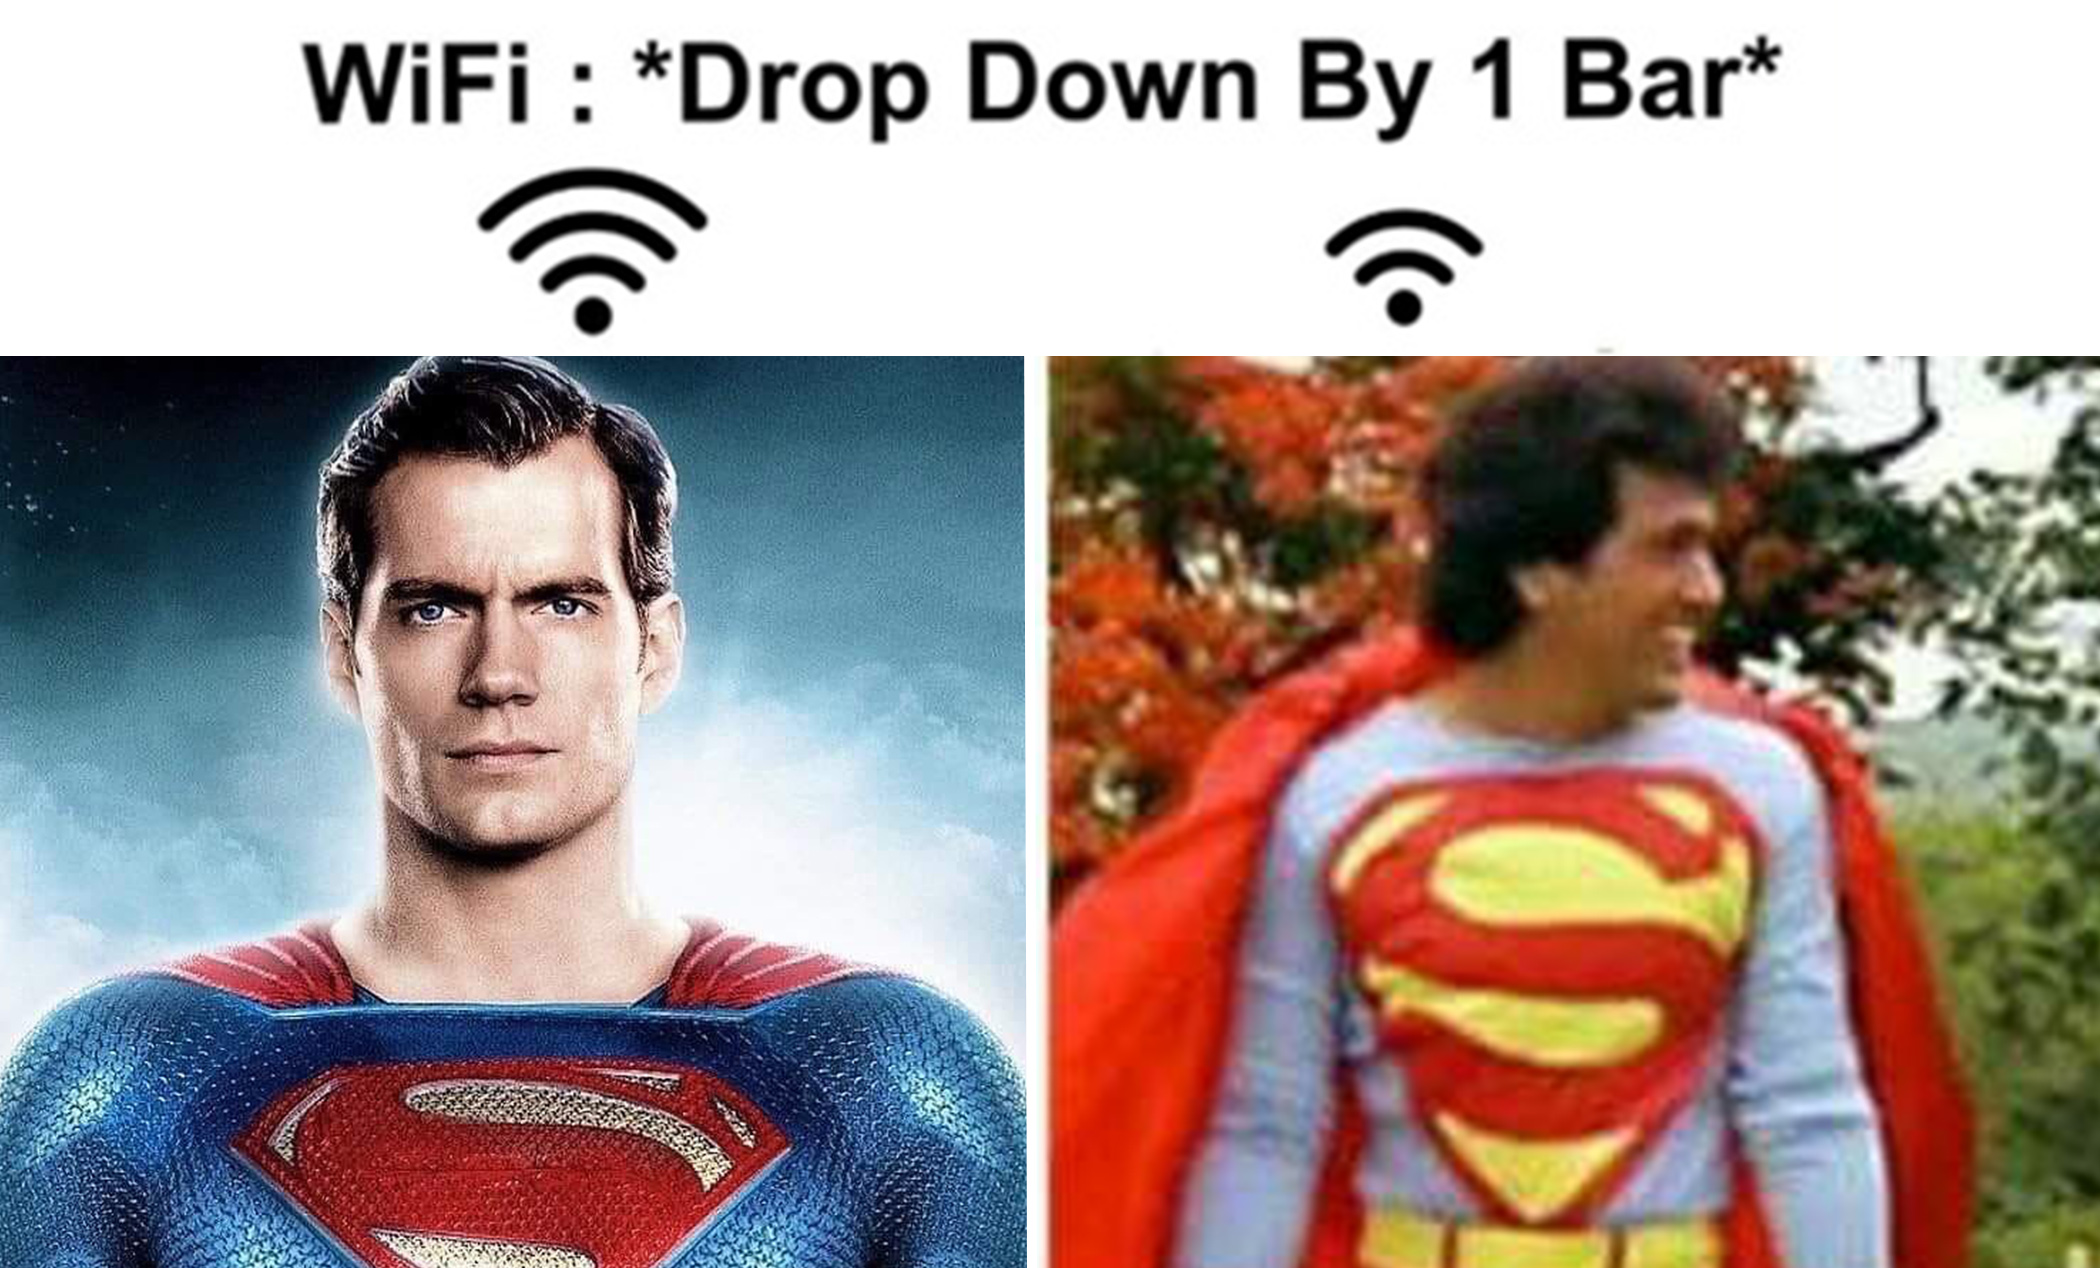 These Wifi Bar Drops Memes Are Better Than Your Internet